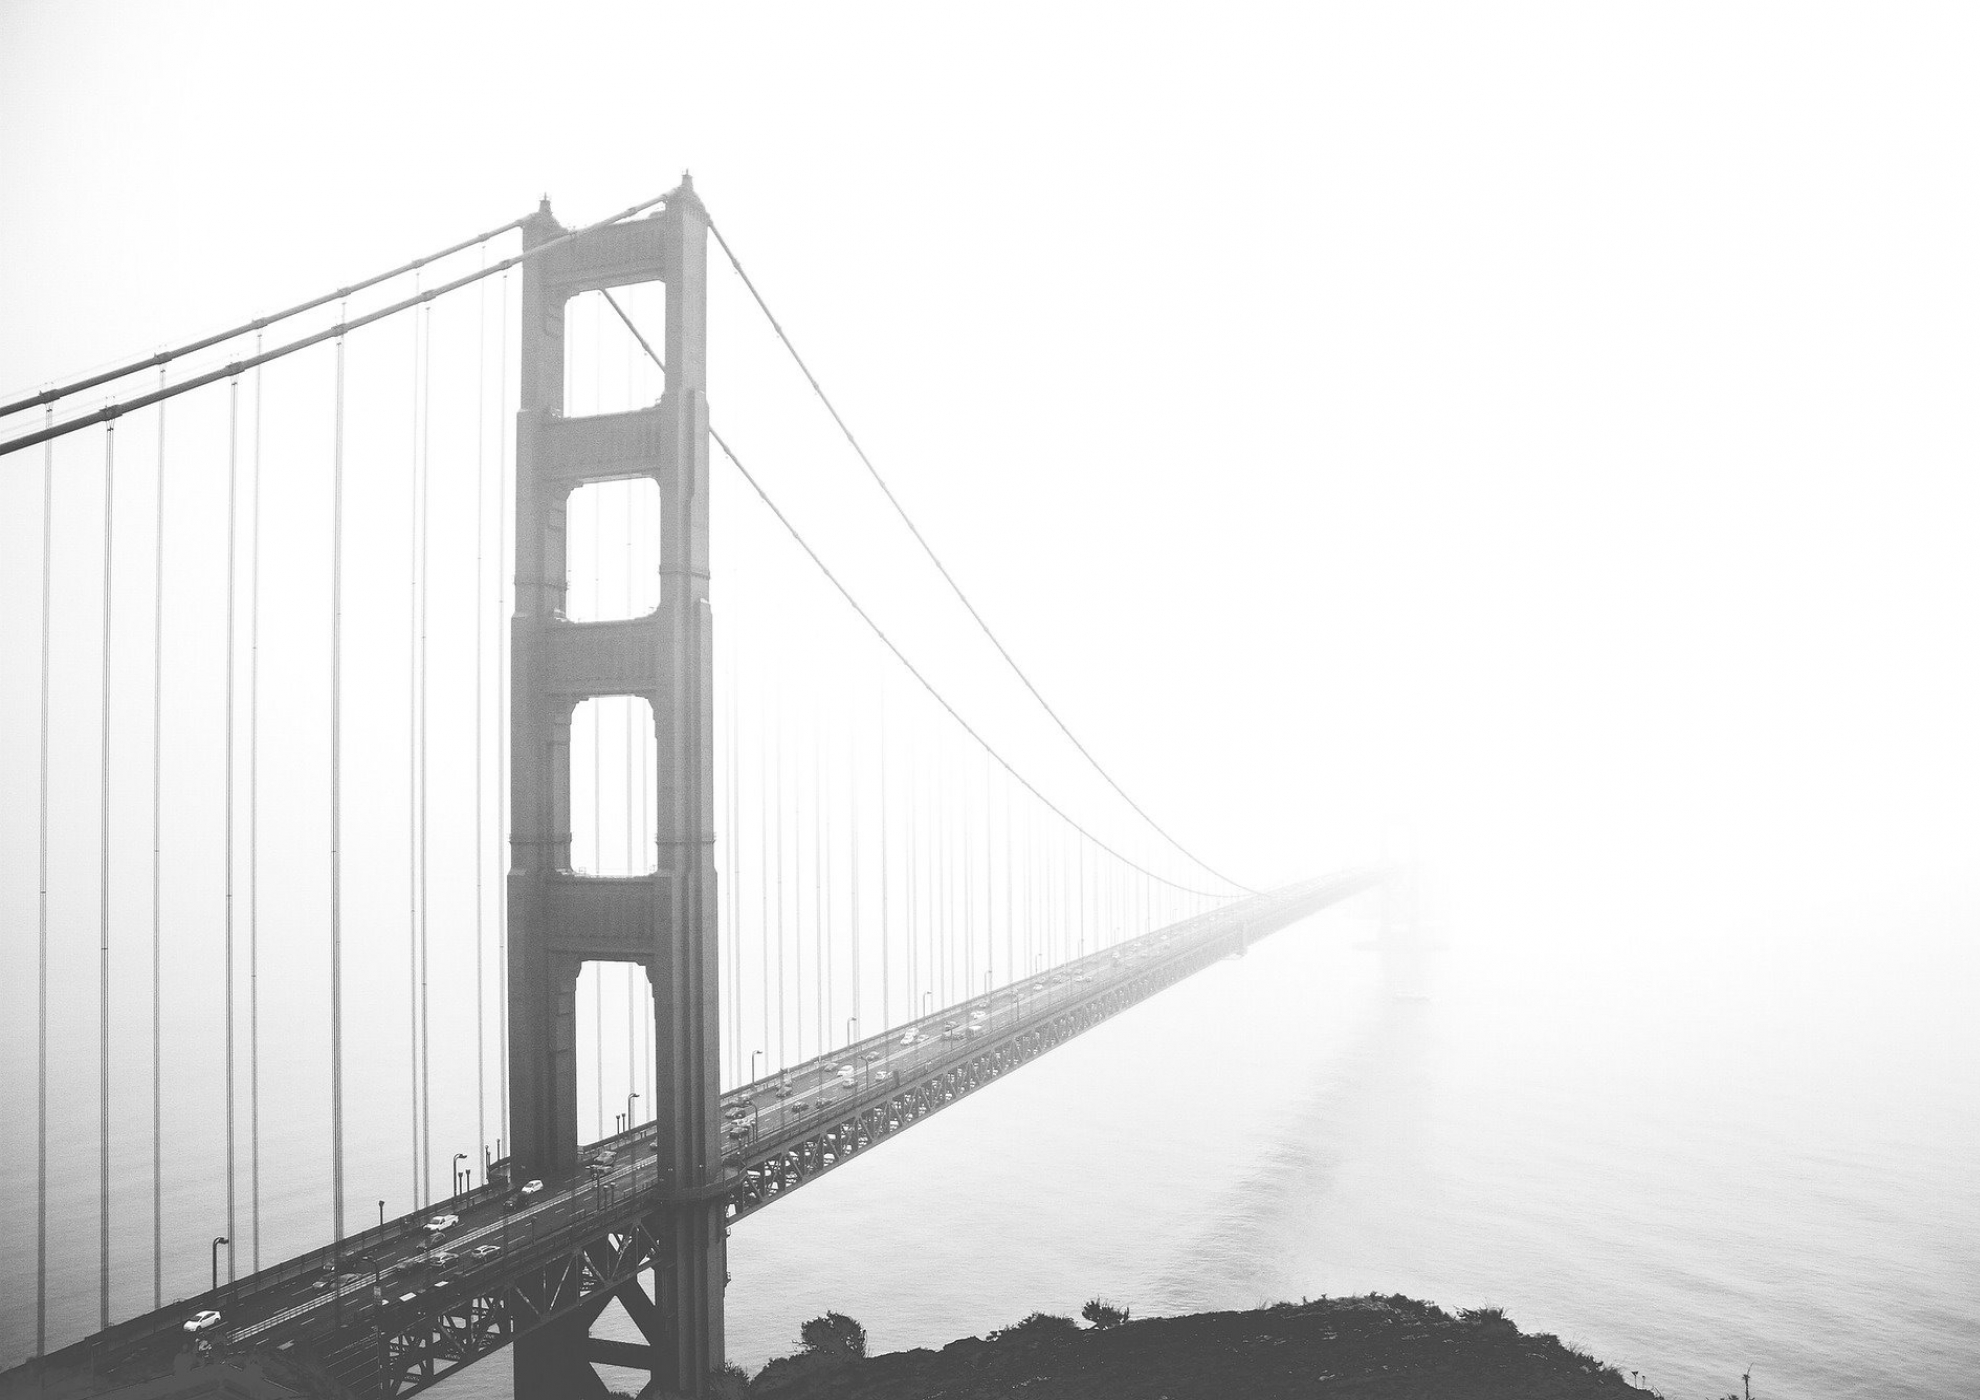 gallery/golden-gate-bridge-690264_1920